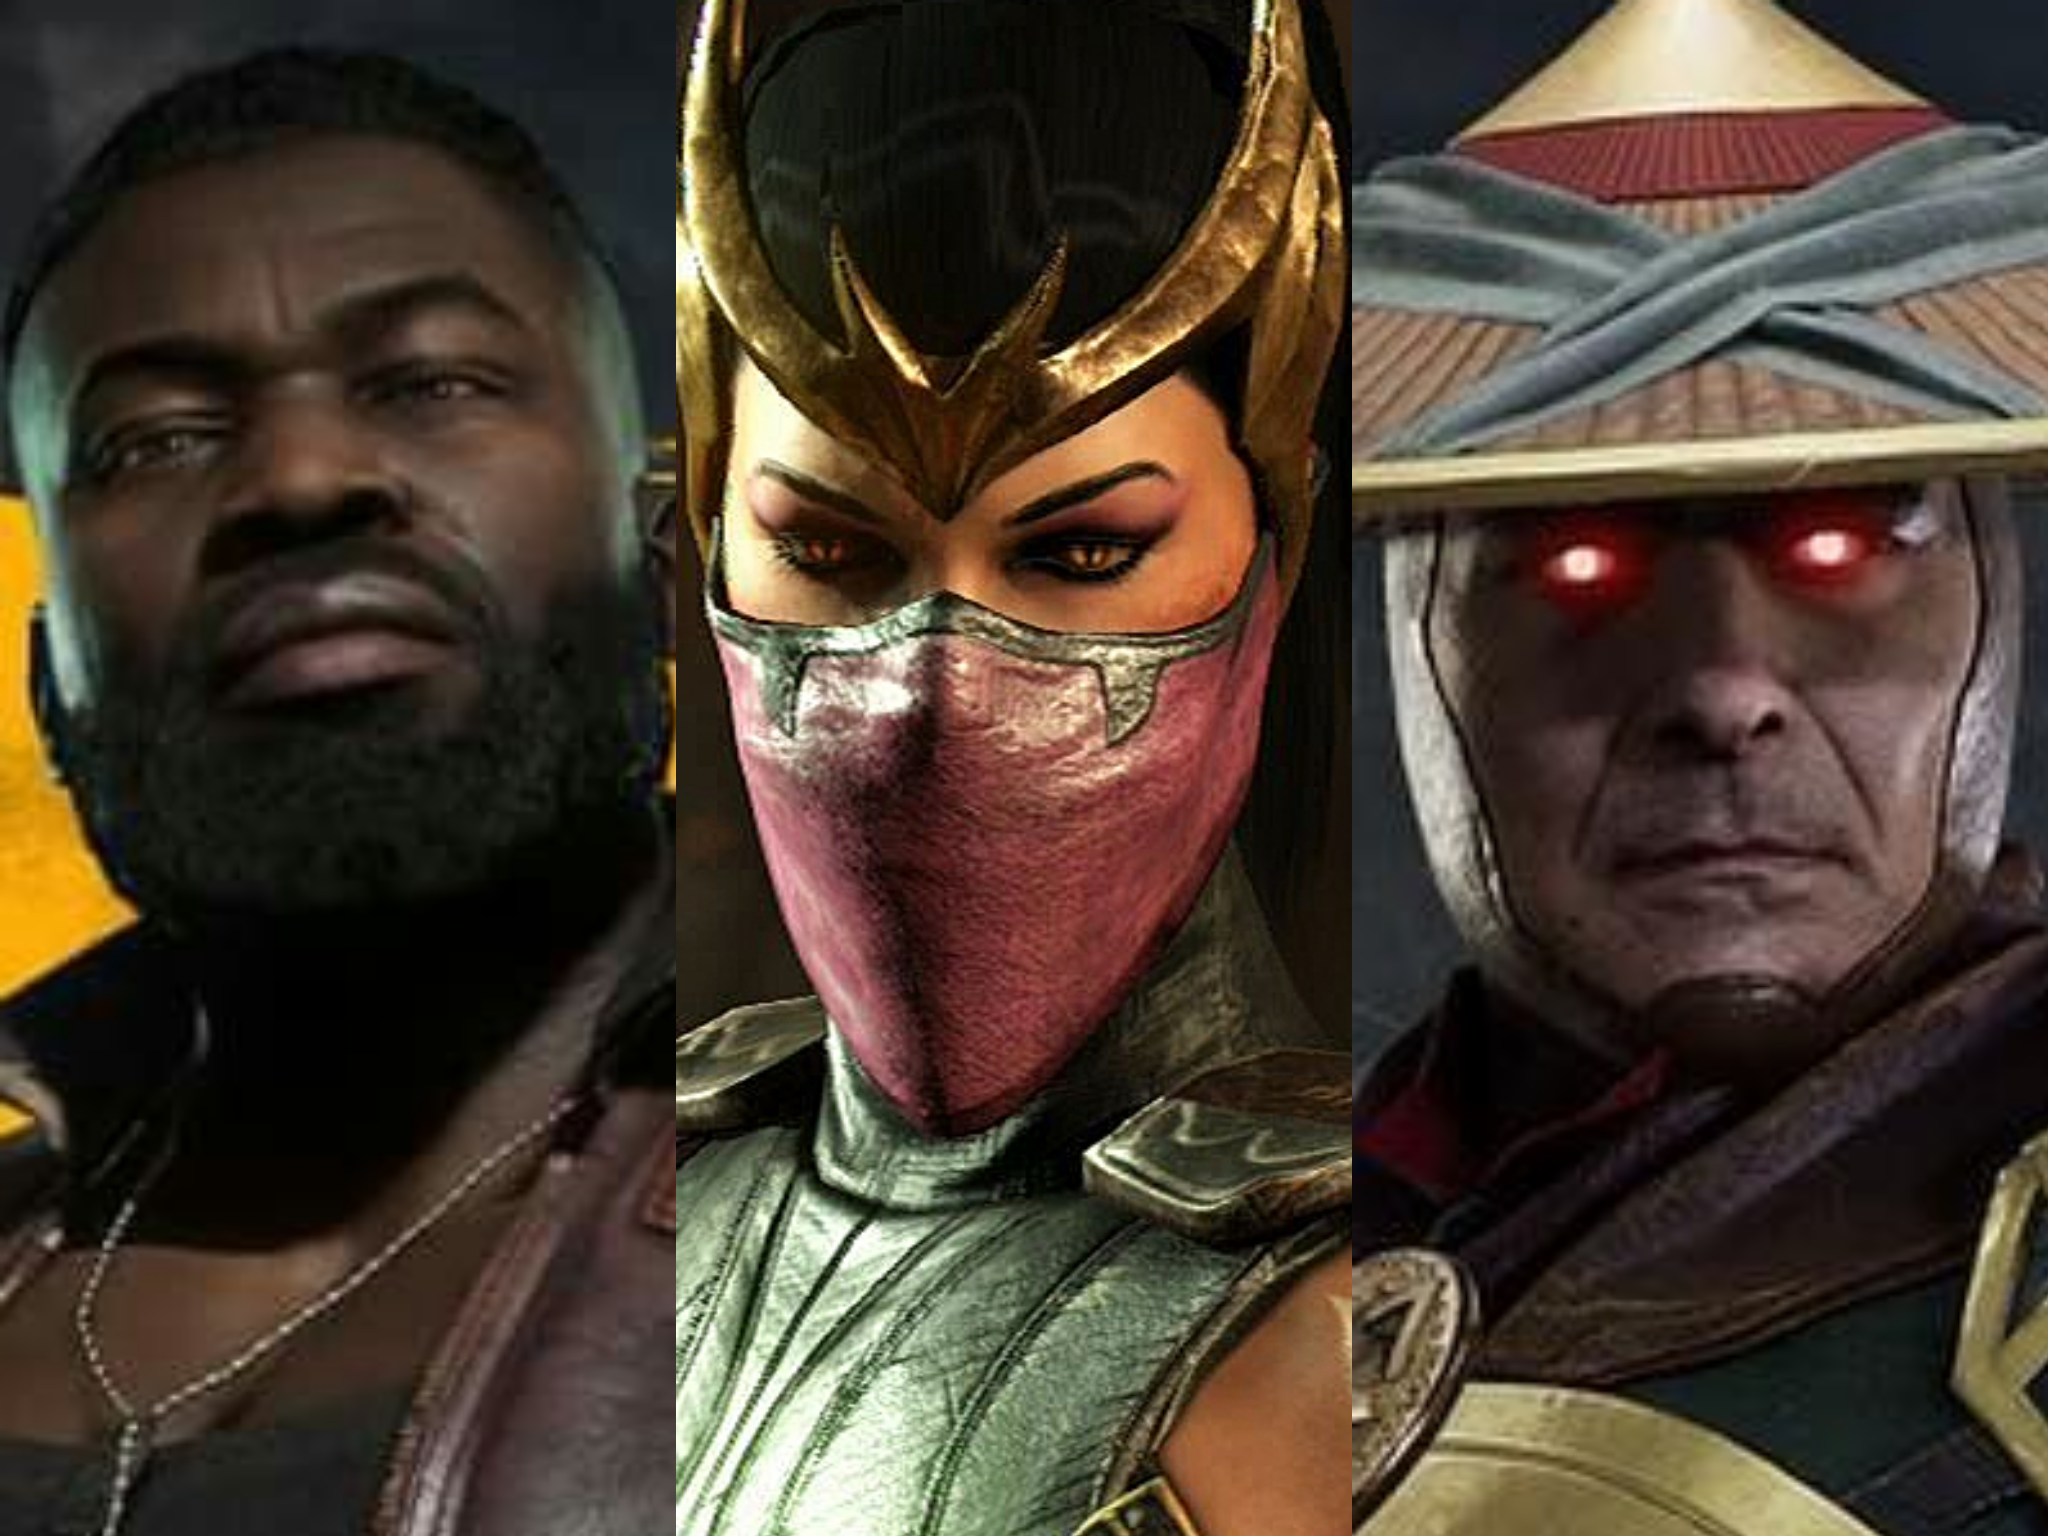 The Mortal Kombat Cast Has Expanded The Action Elite